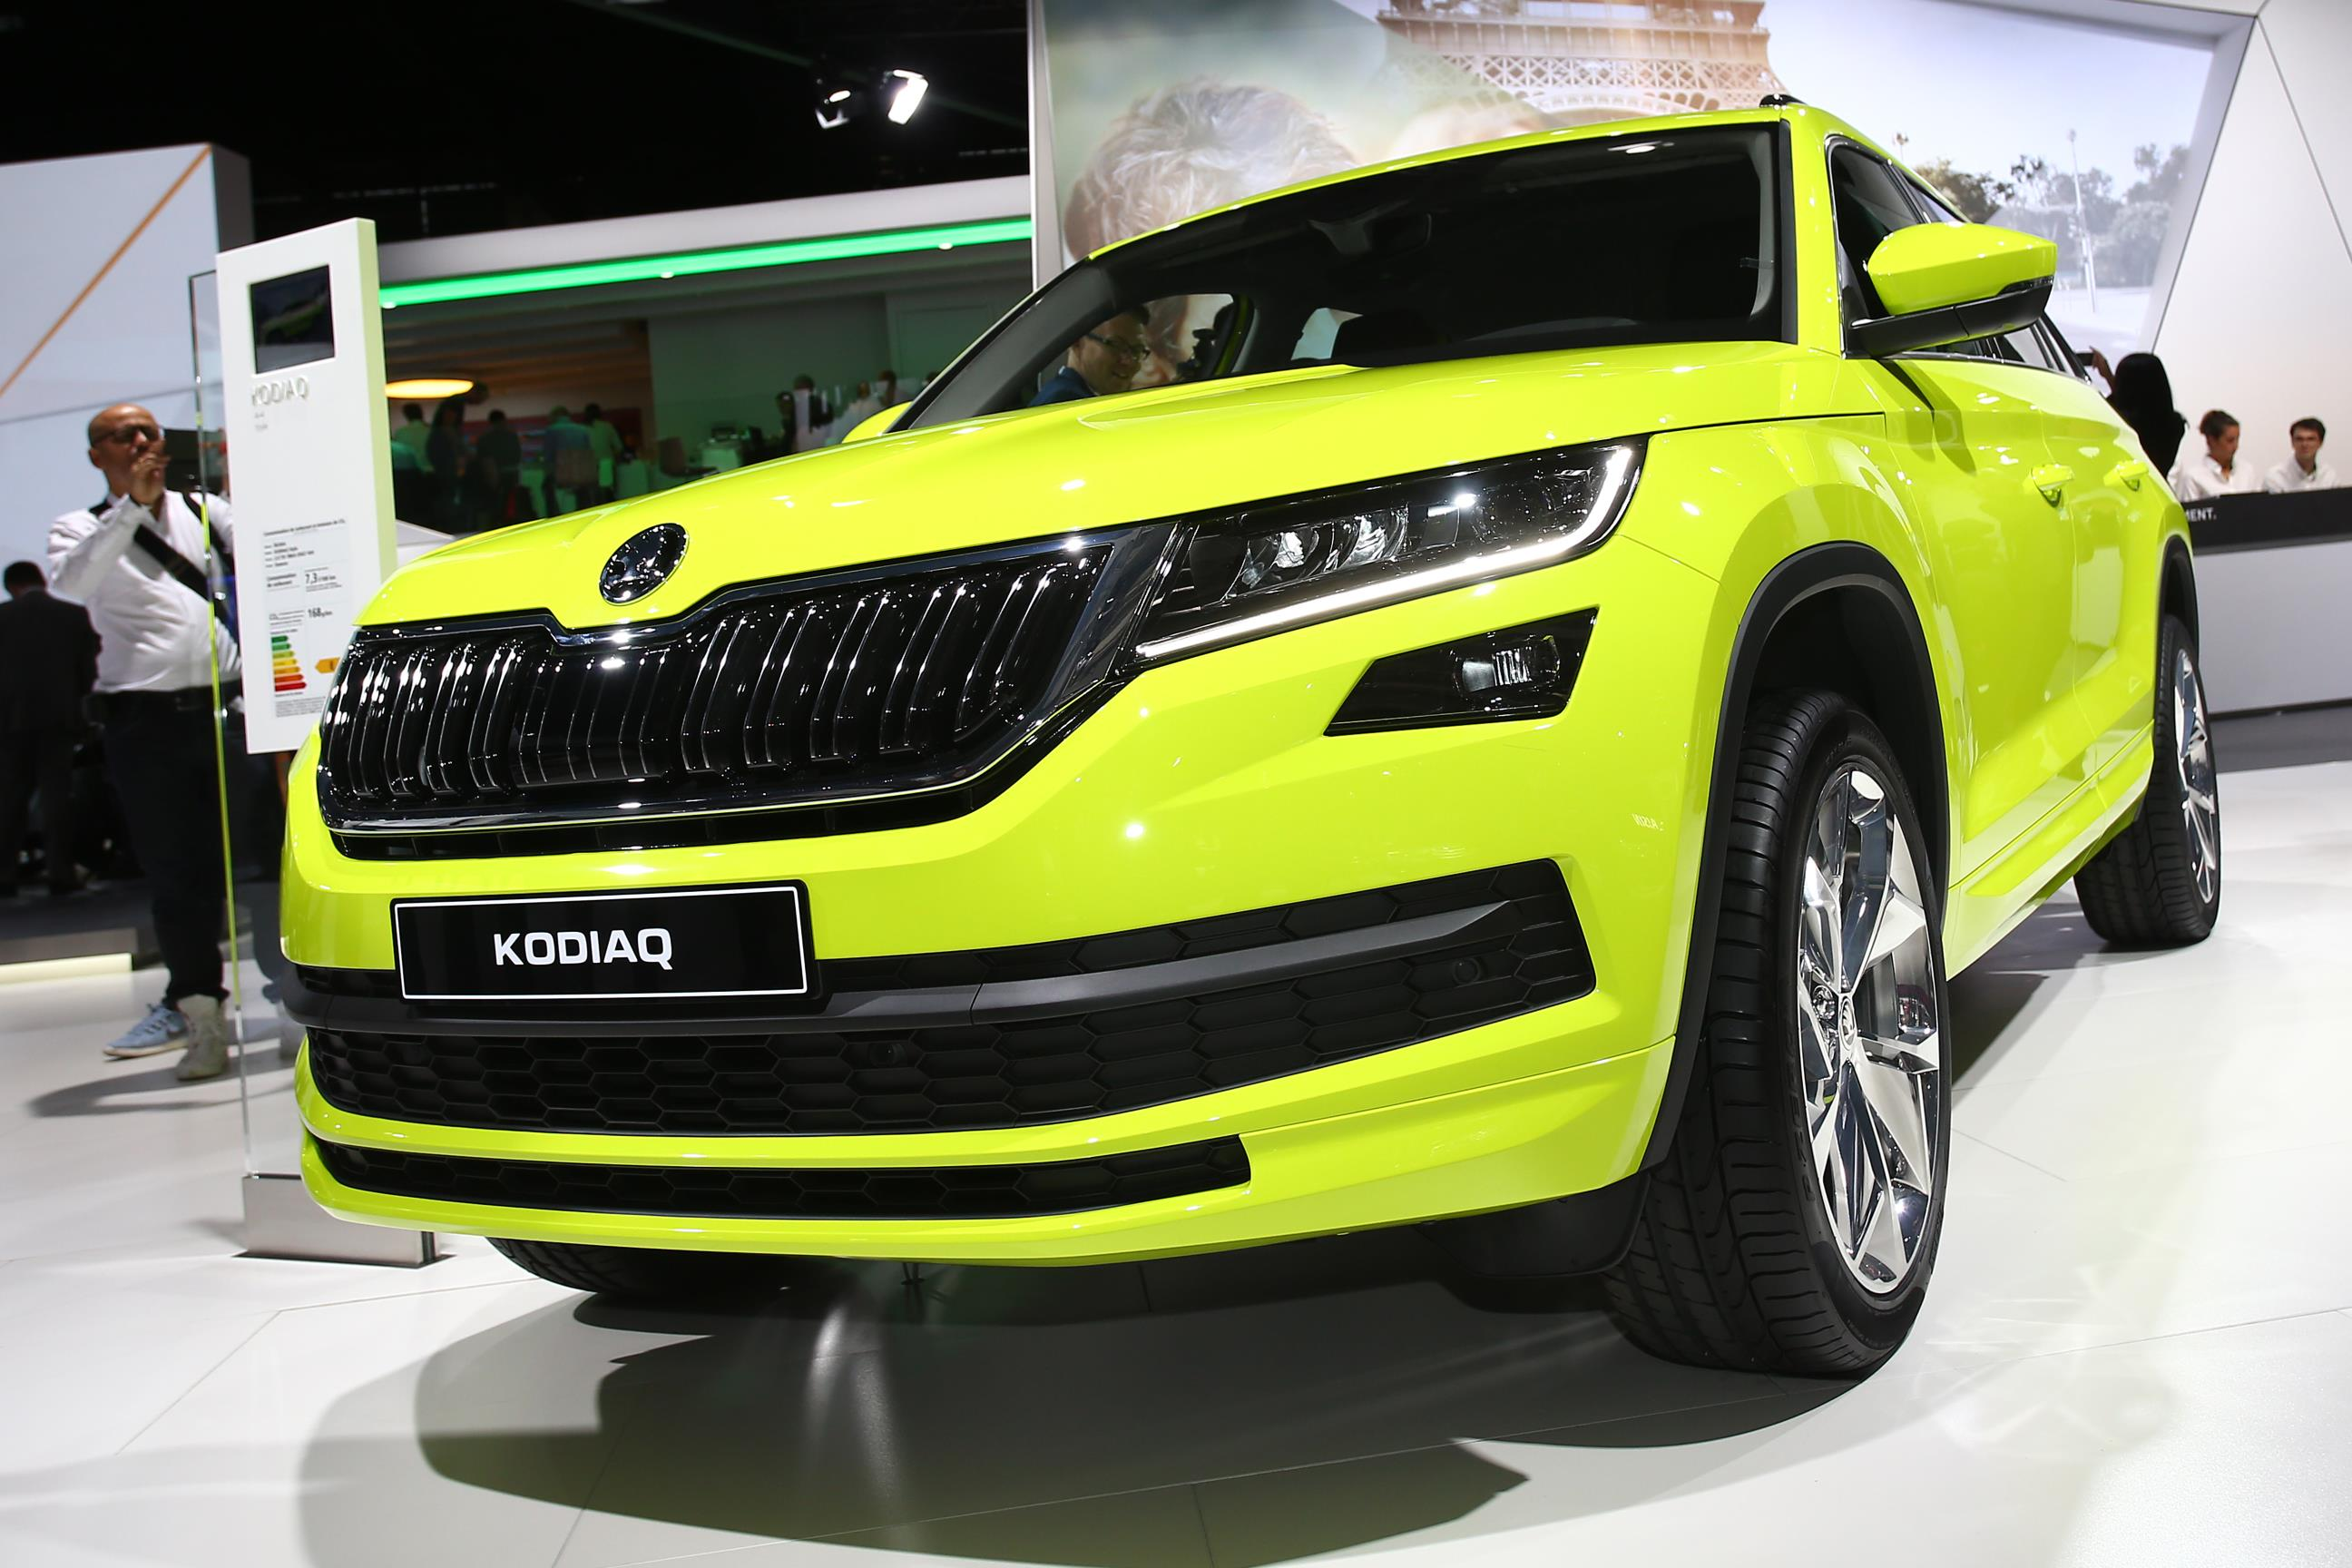 Skoda Schiebetür Skoda Kodiaq Brings Speed Yellowgreen Paint And Door